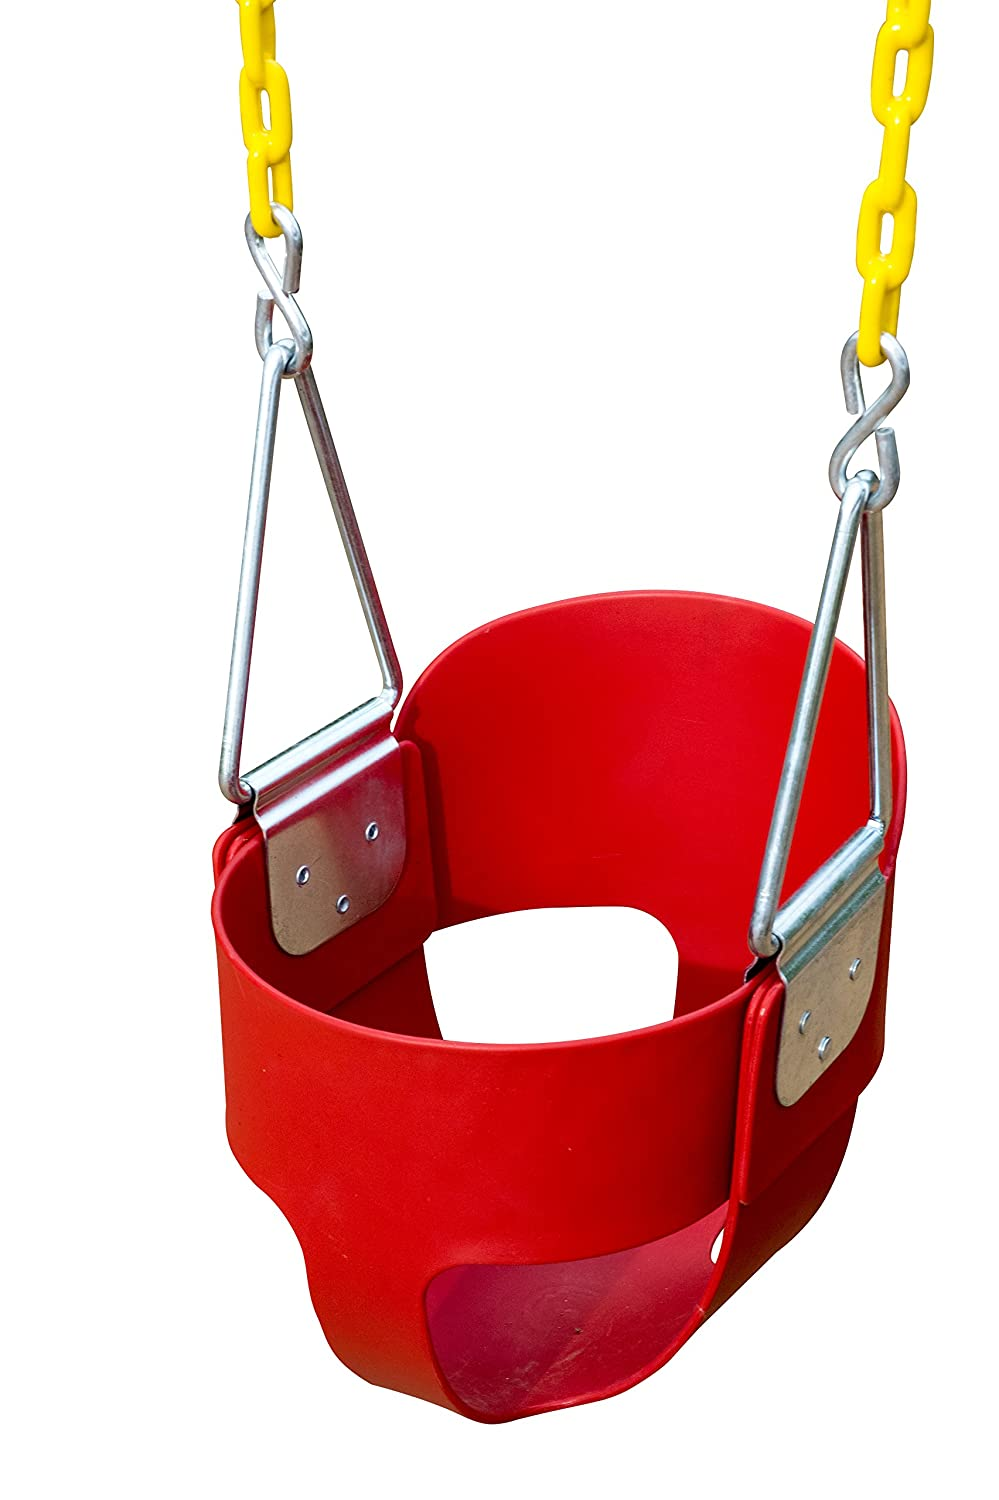 High Back Full Bucket Toddler Swing Seat with Plastic Coated Chains - Swing Set Squirrel Products